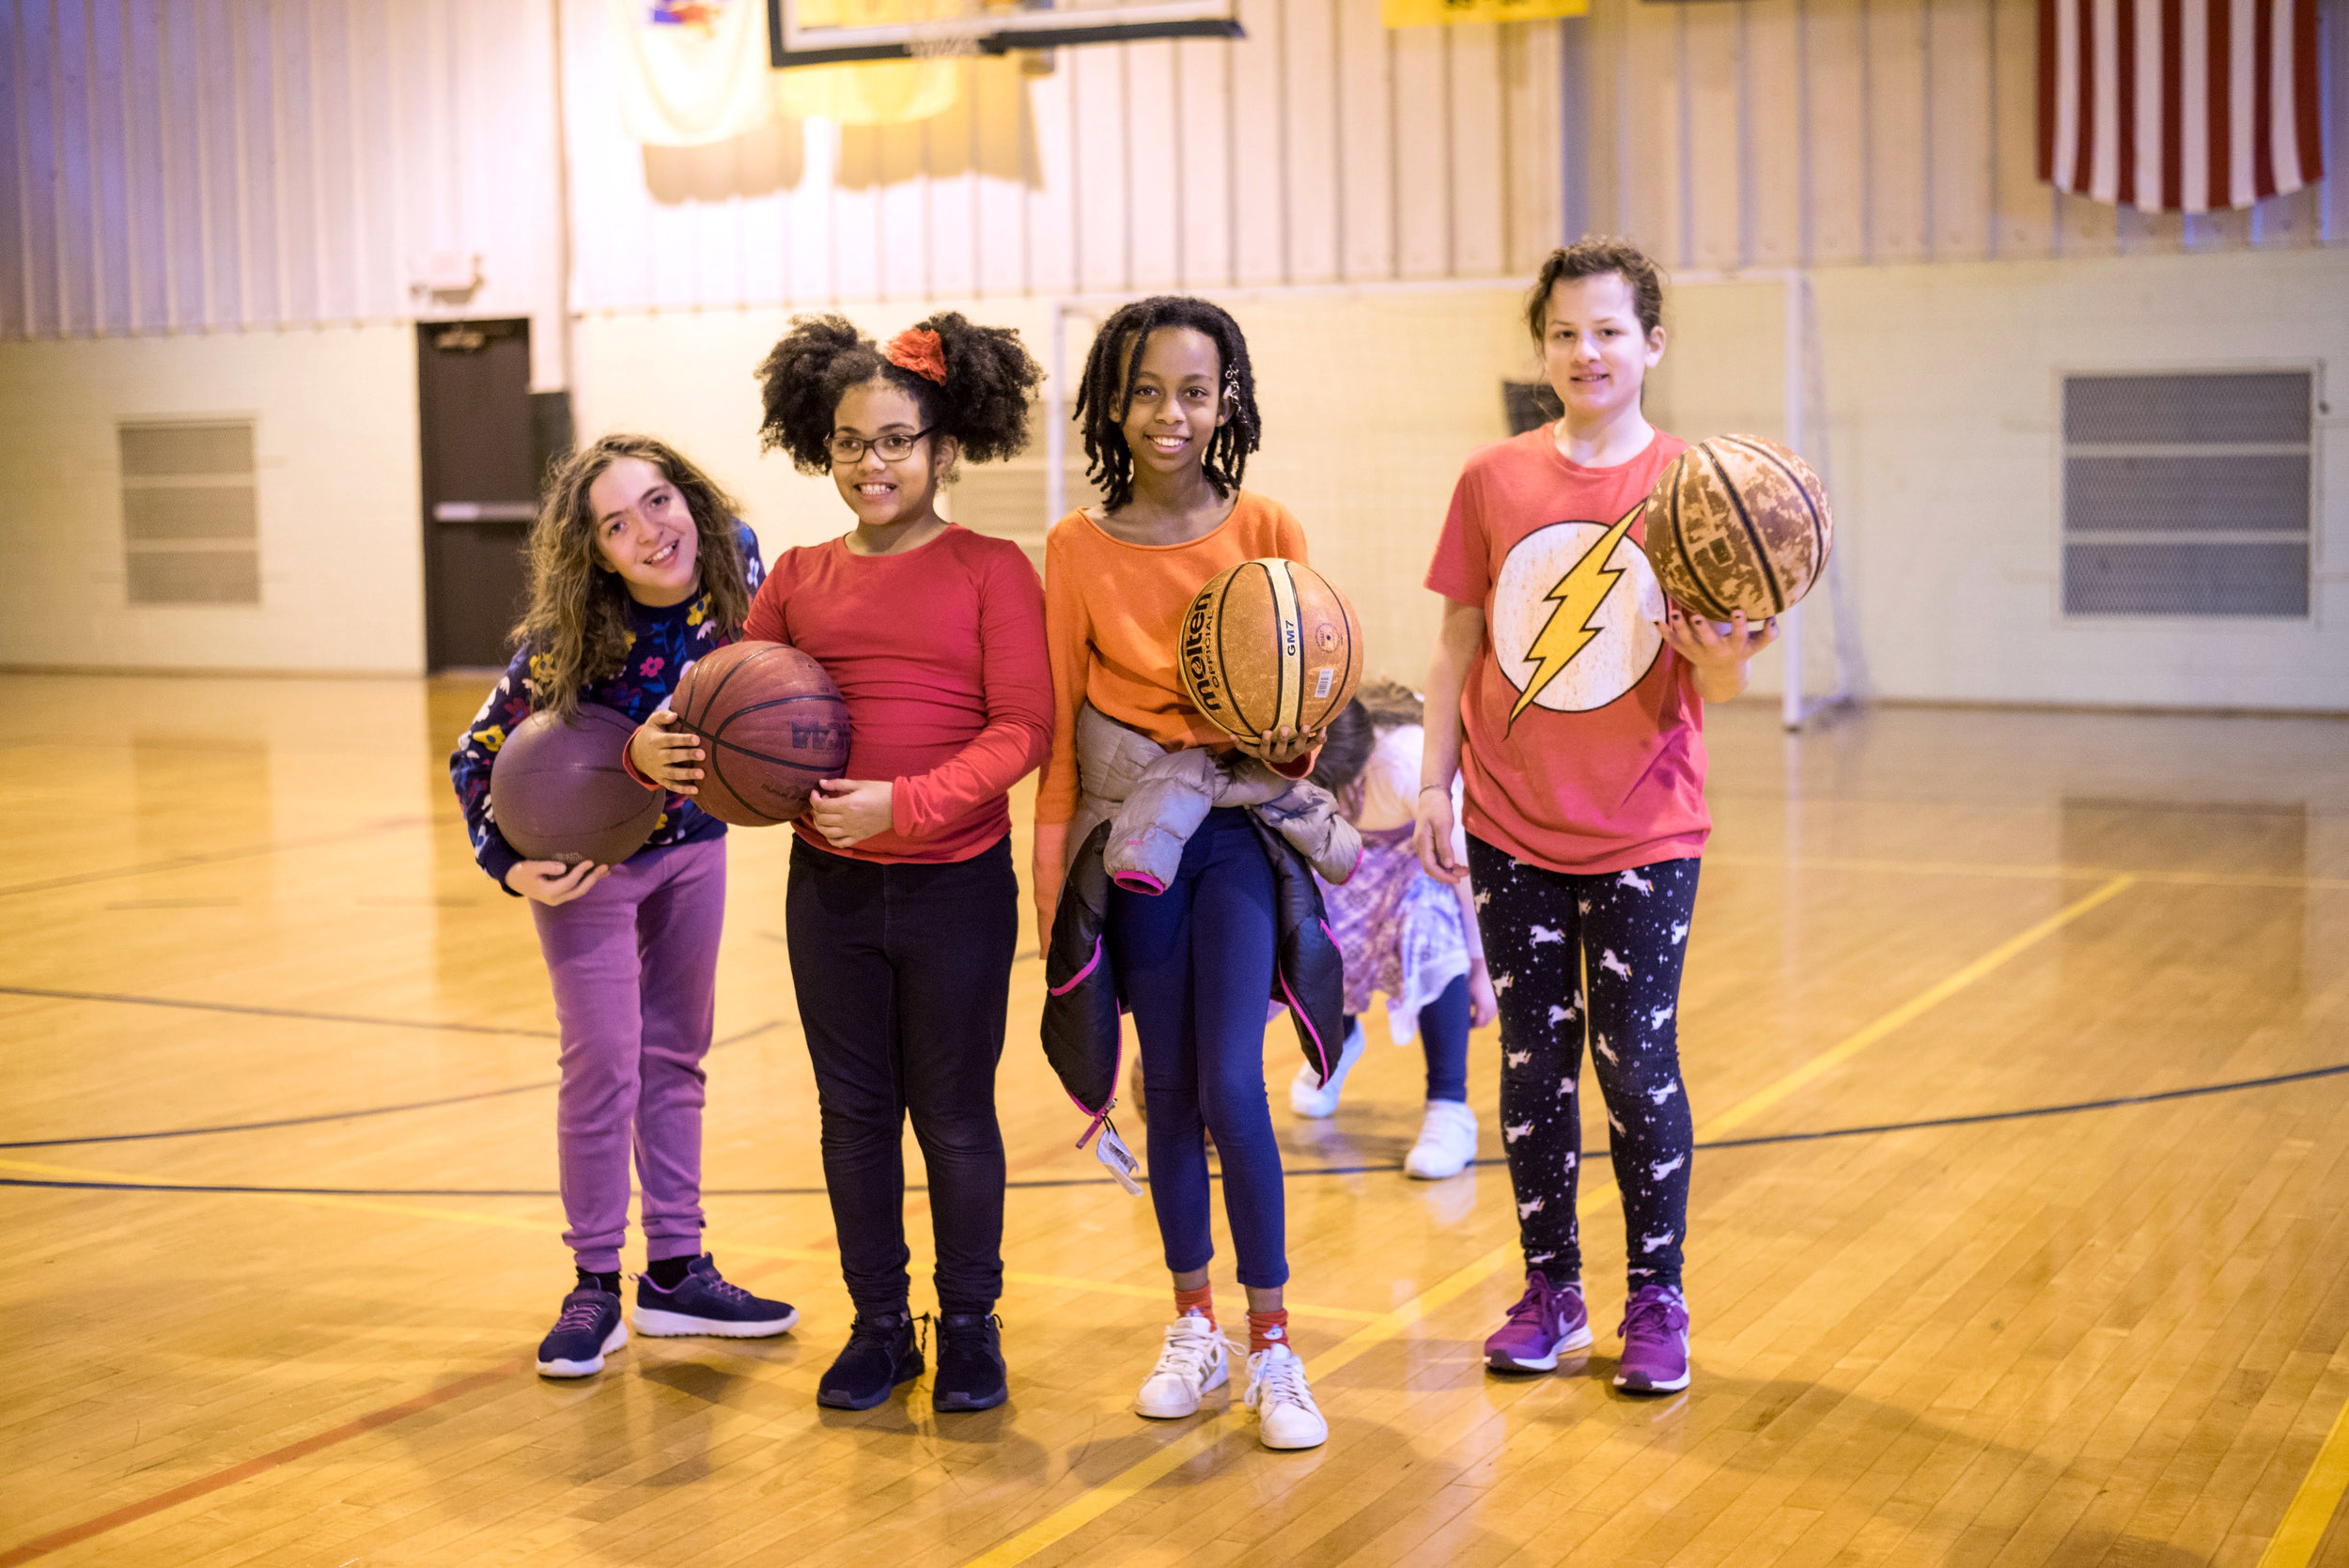 Oakland School's wide variety of extracurriculars has something for everyone.